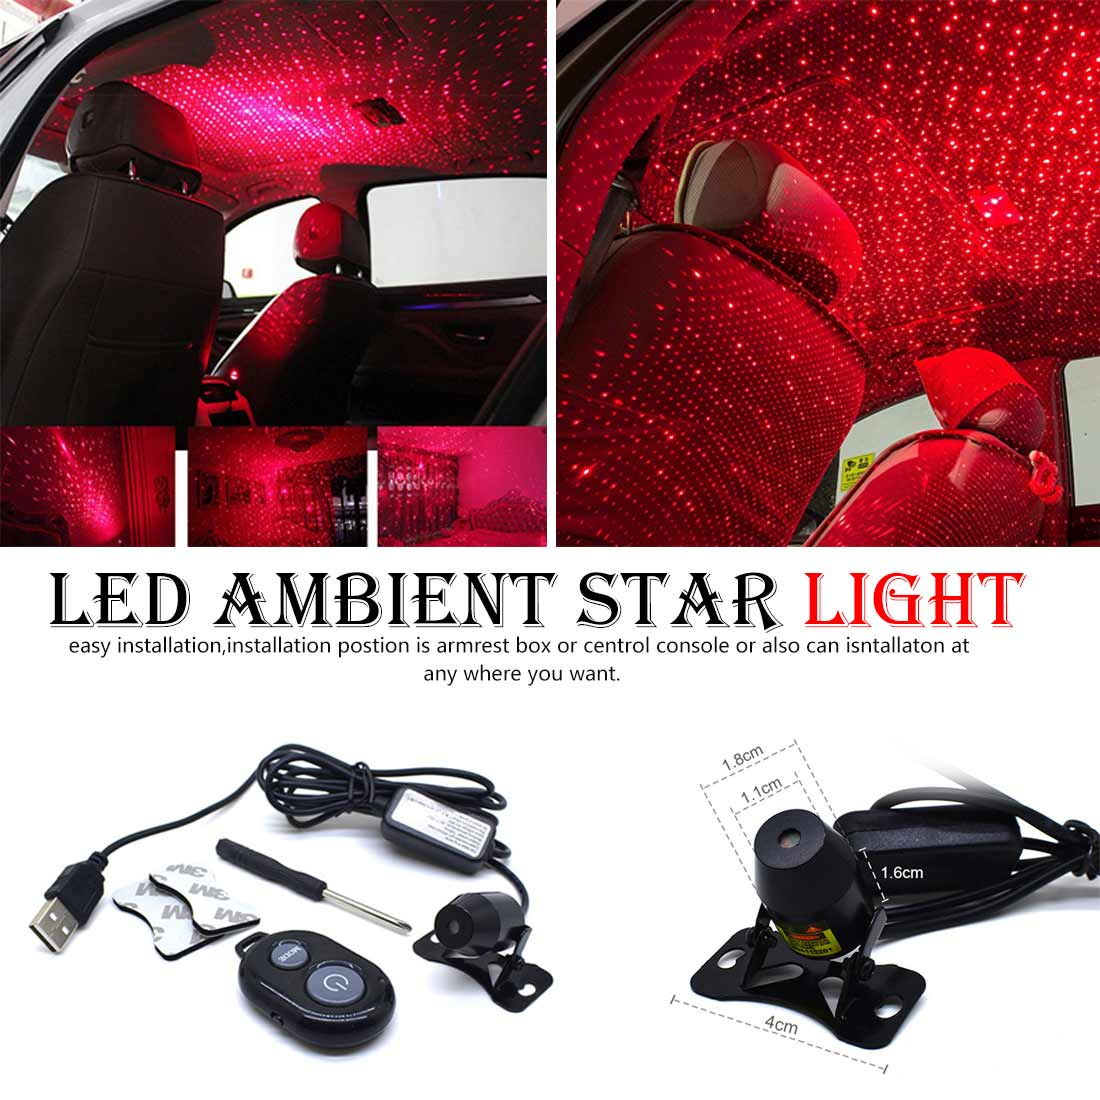 FangNymph Voice Control LED Light Car Atmosphere Colorful Music Sound Lamp Ambient Star Light Remote Control Spotlight USB Plug image